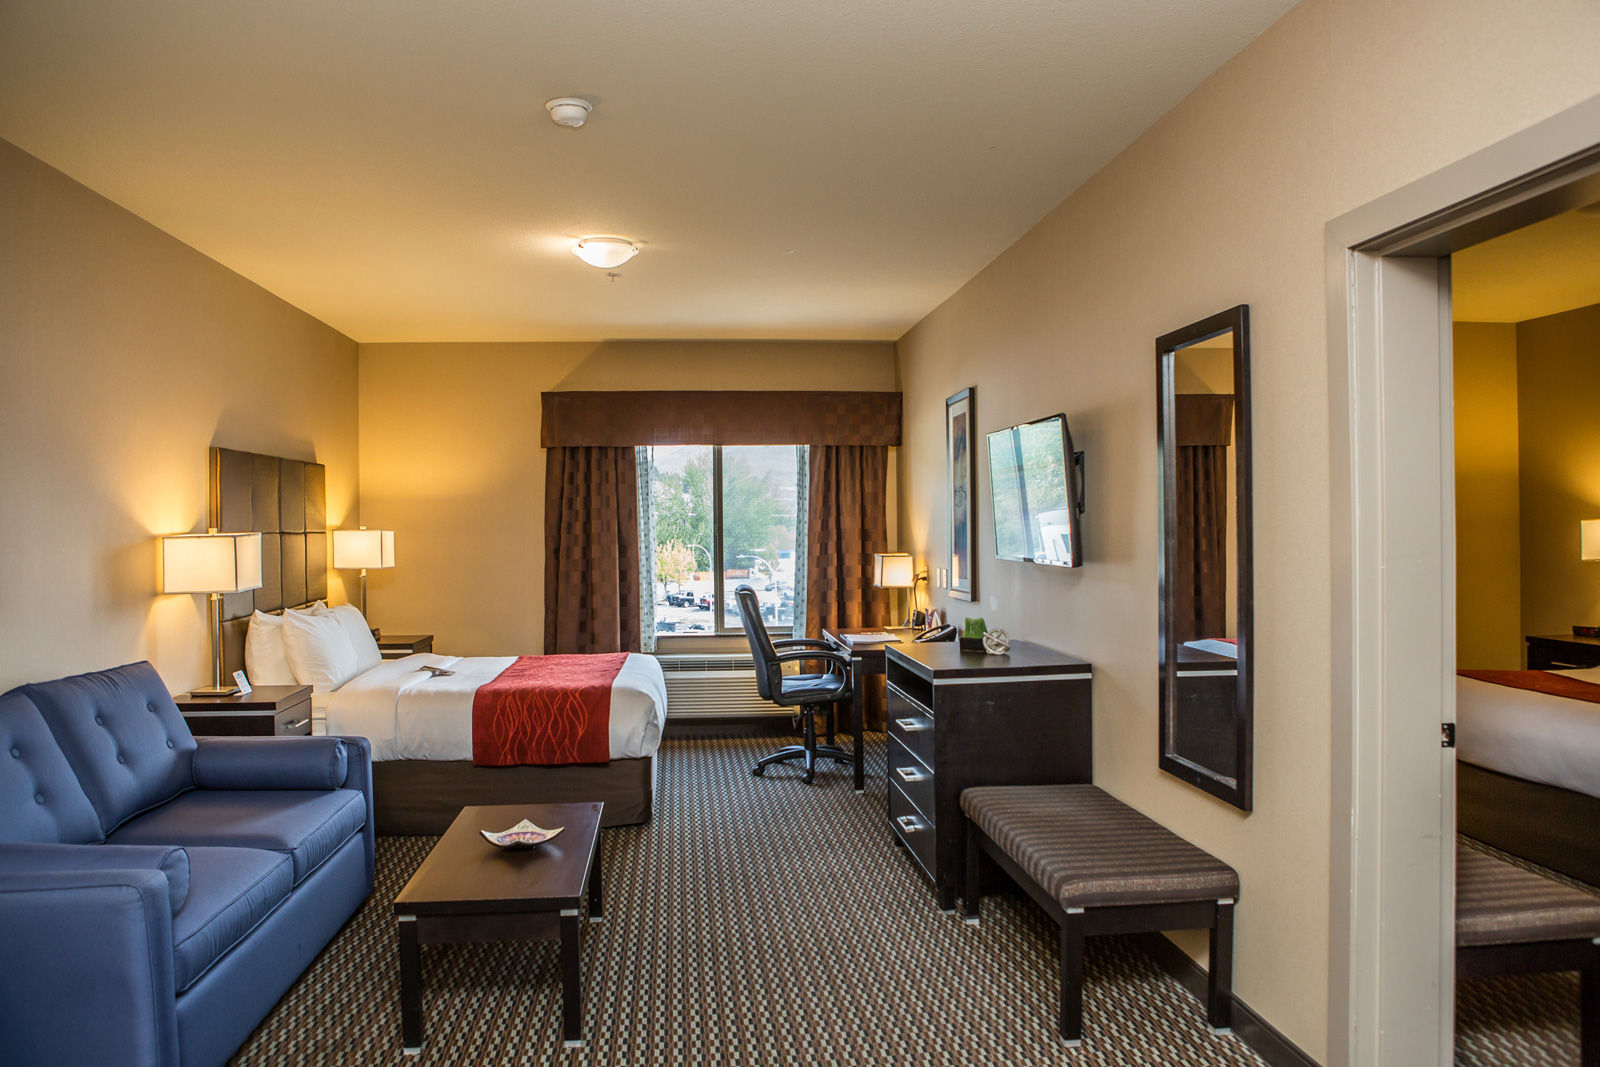 Our spacious suites have been recognized out of Kelowna hotels on TripAdvisor for their comfortable amenities.